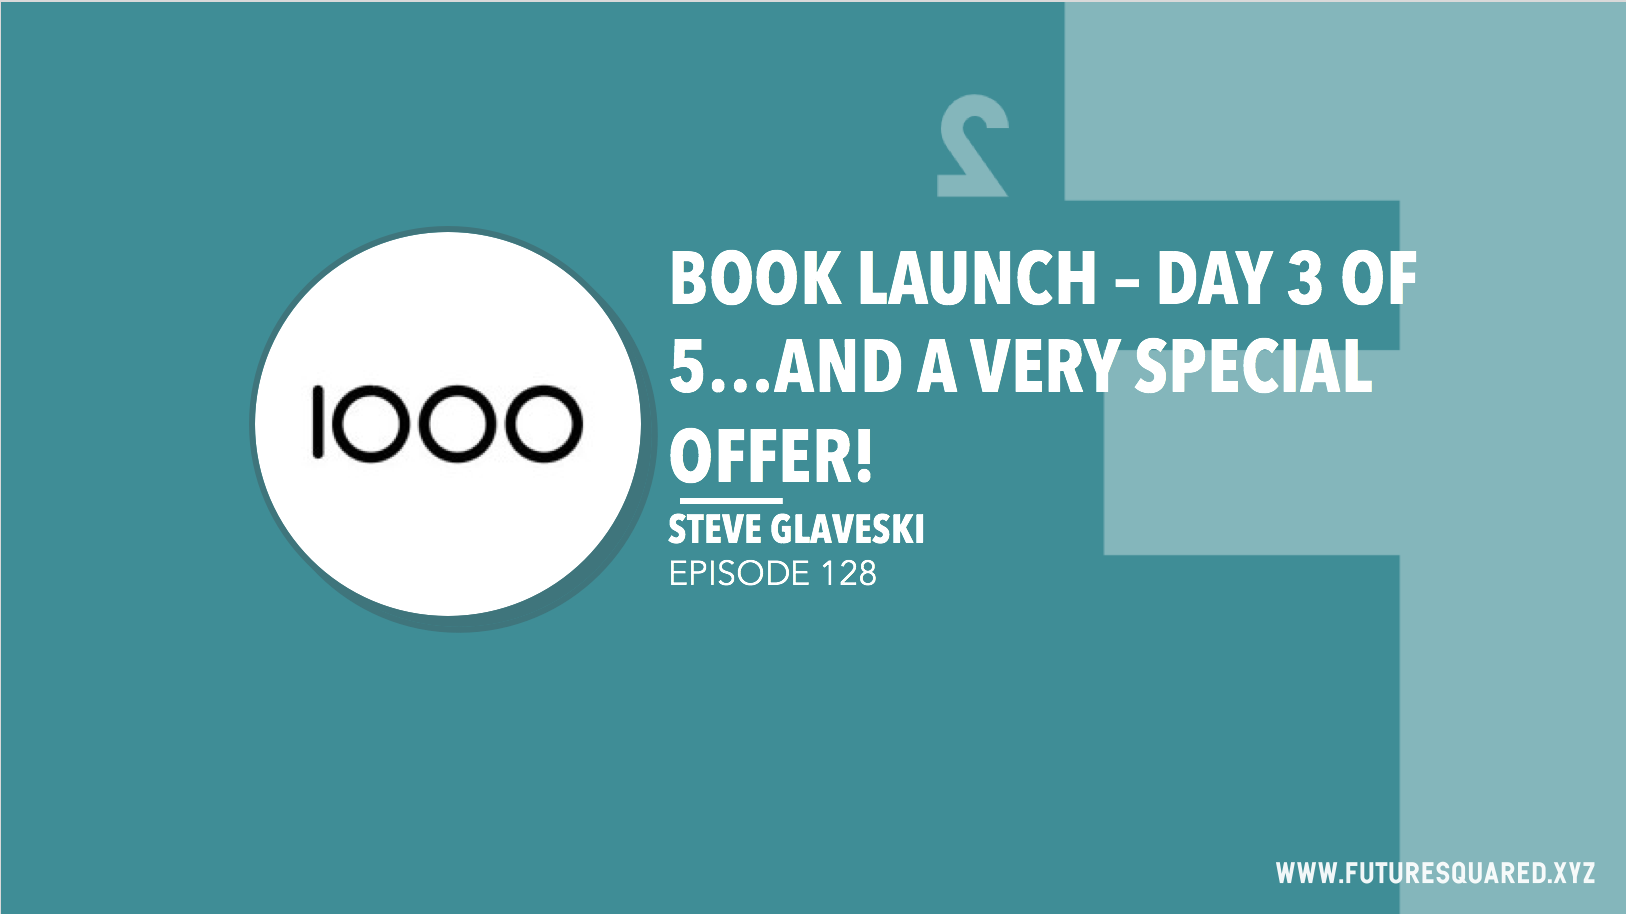 Future Squared Episode #128: Book Launch Day 3 of 5...and a very special offer!